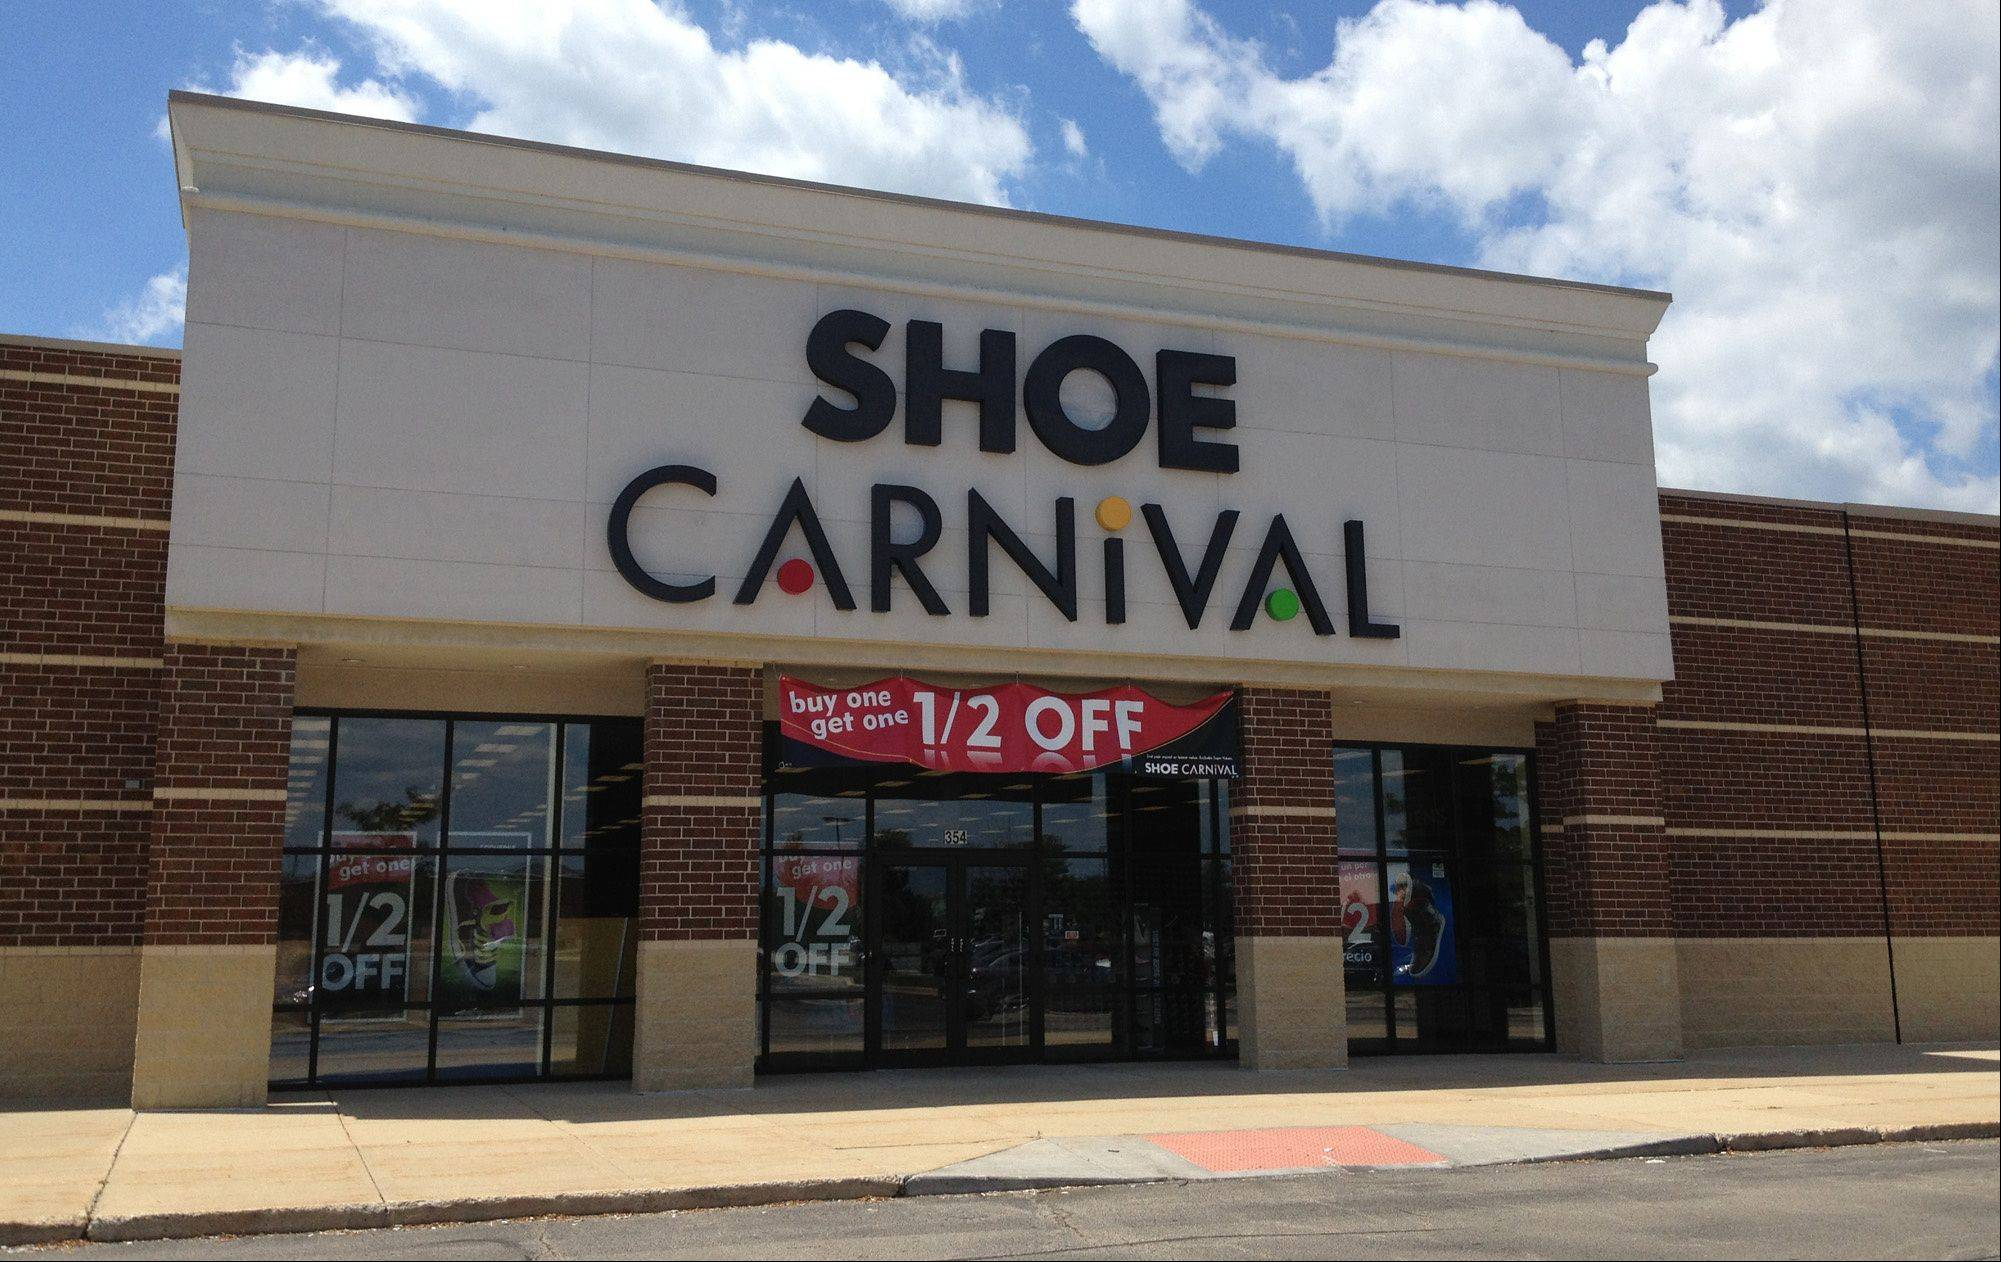 Two new Shoe Carnival stores opened in the Chicago area in late July, including one on Randall Road in South Elgin.